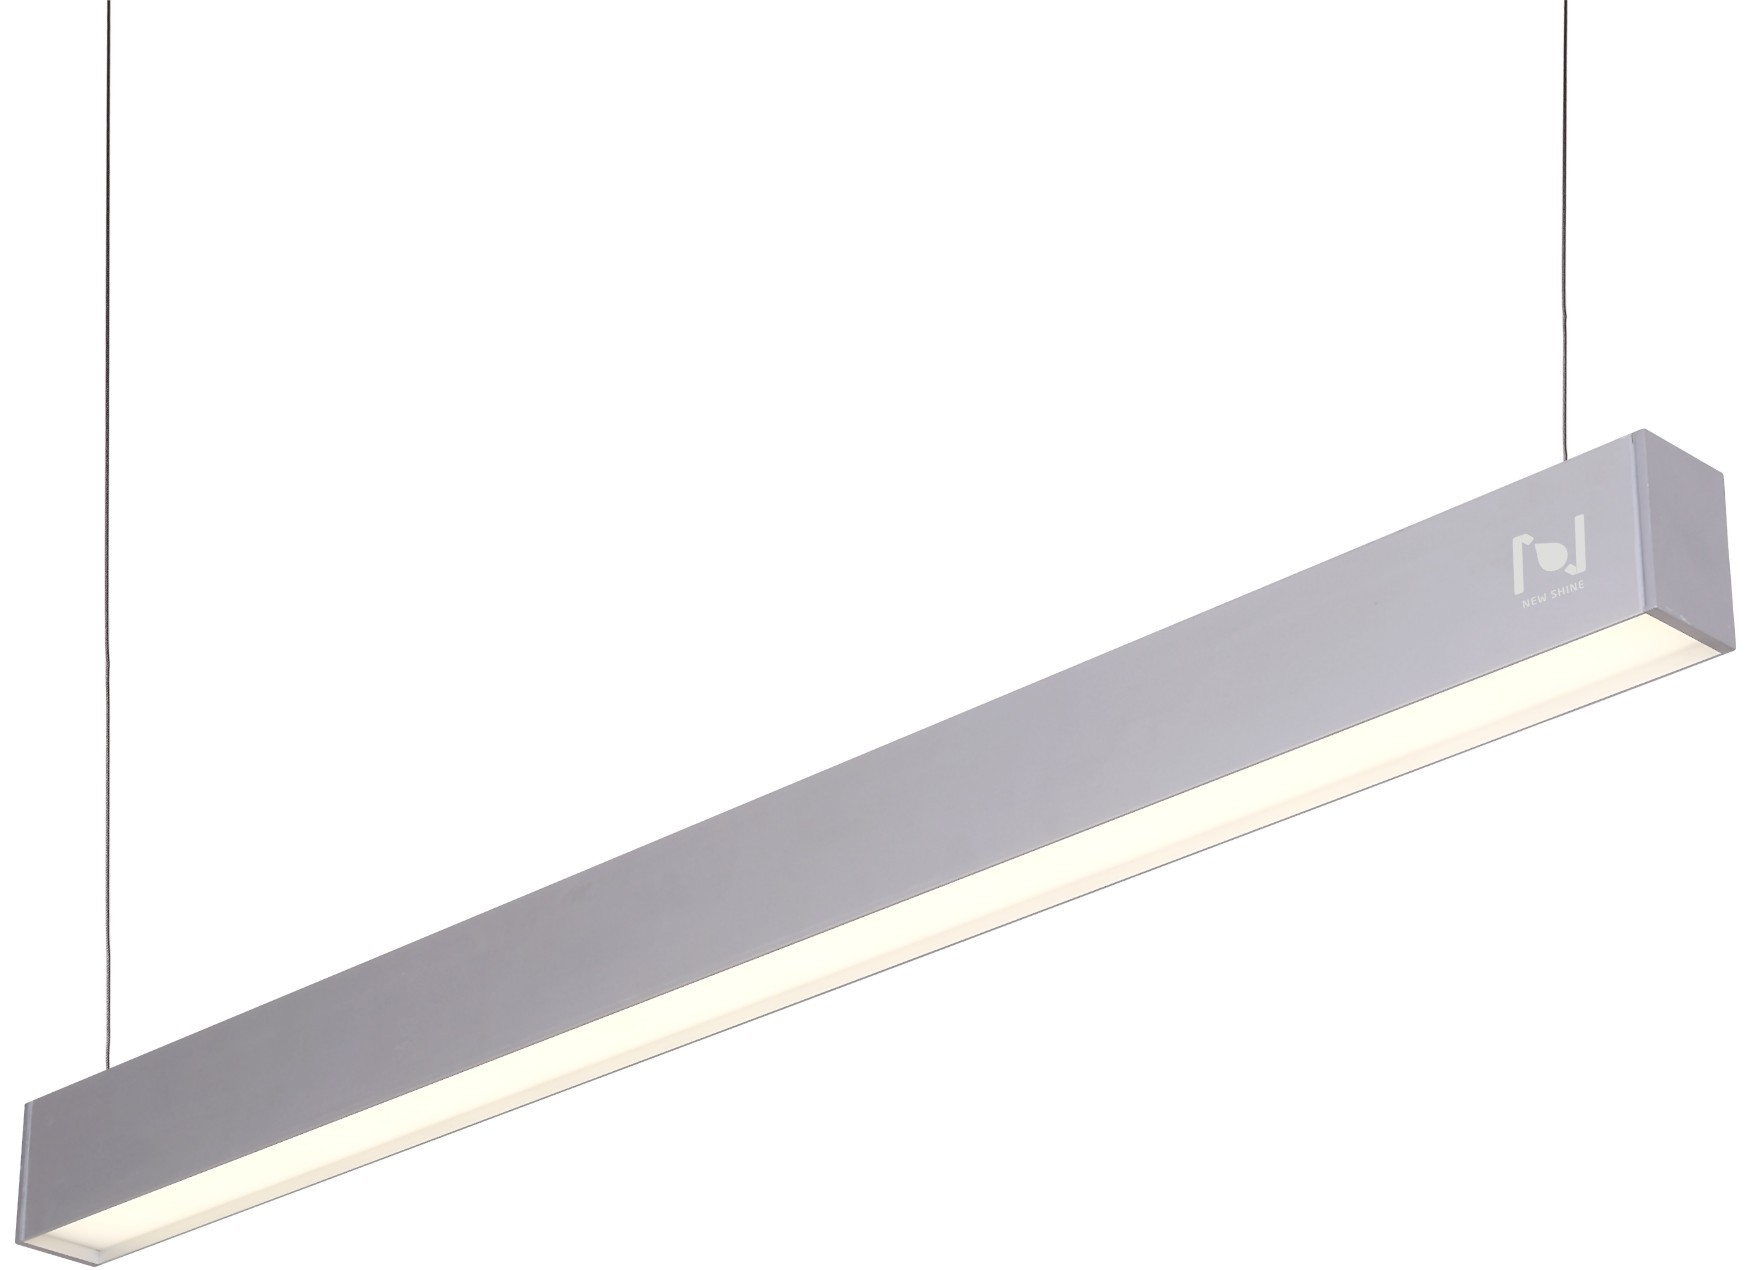 office light fixture. Linear Light Fixture LL010280-80W Office C